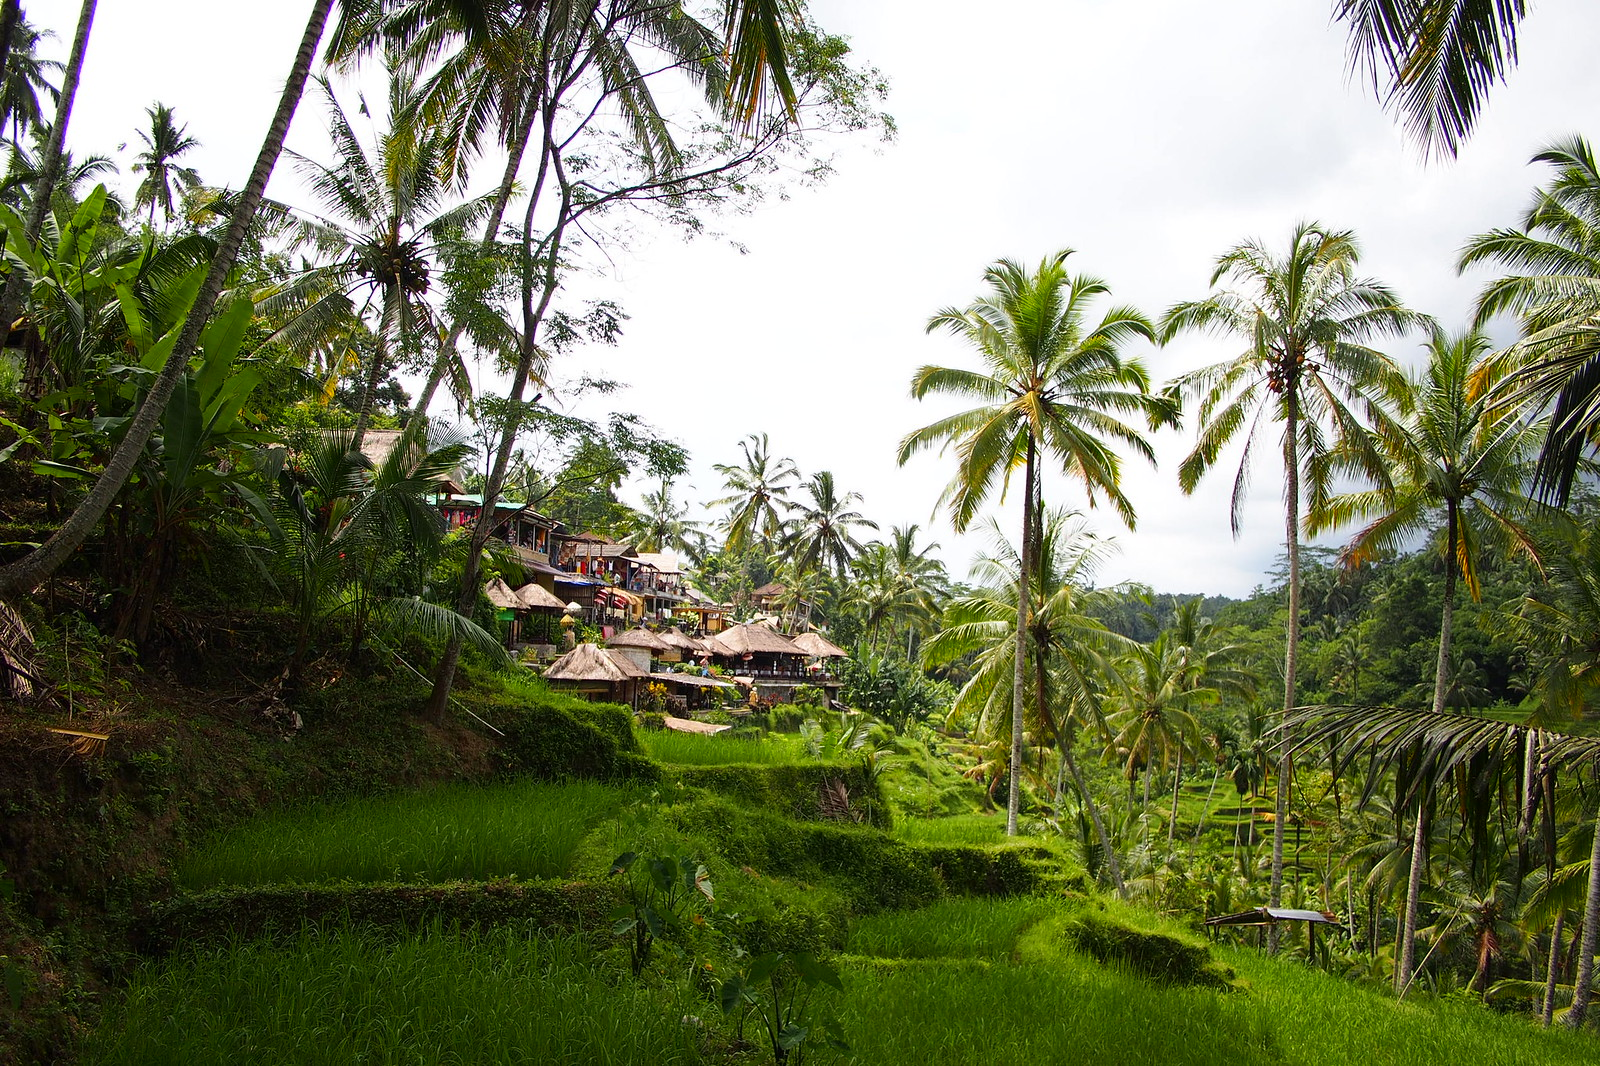 View of the rice terrace from the valley in Ubud Bali